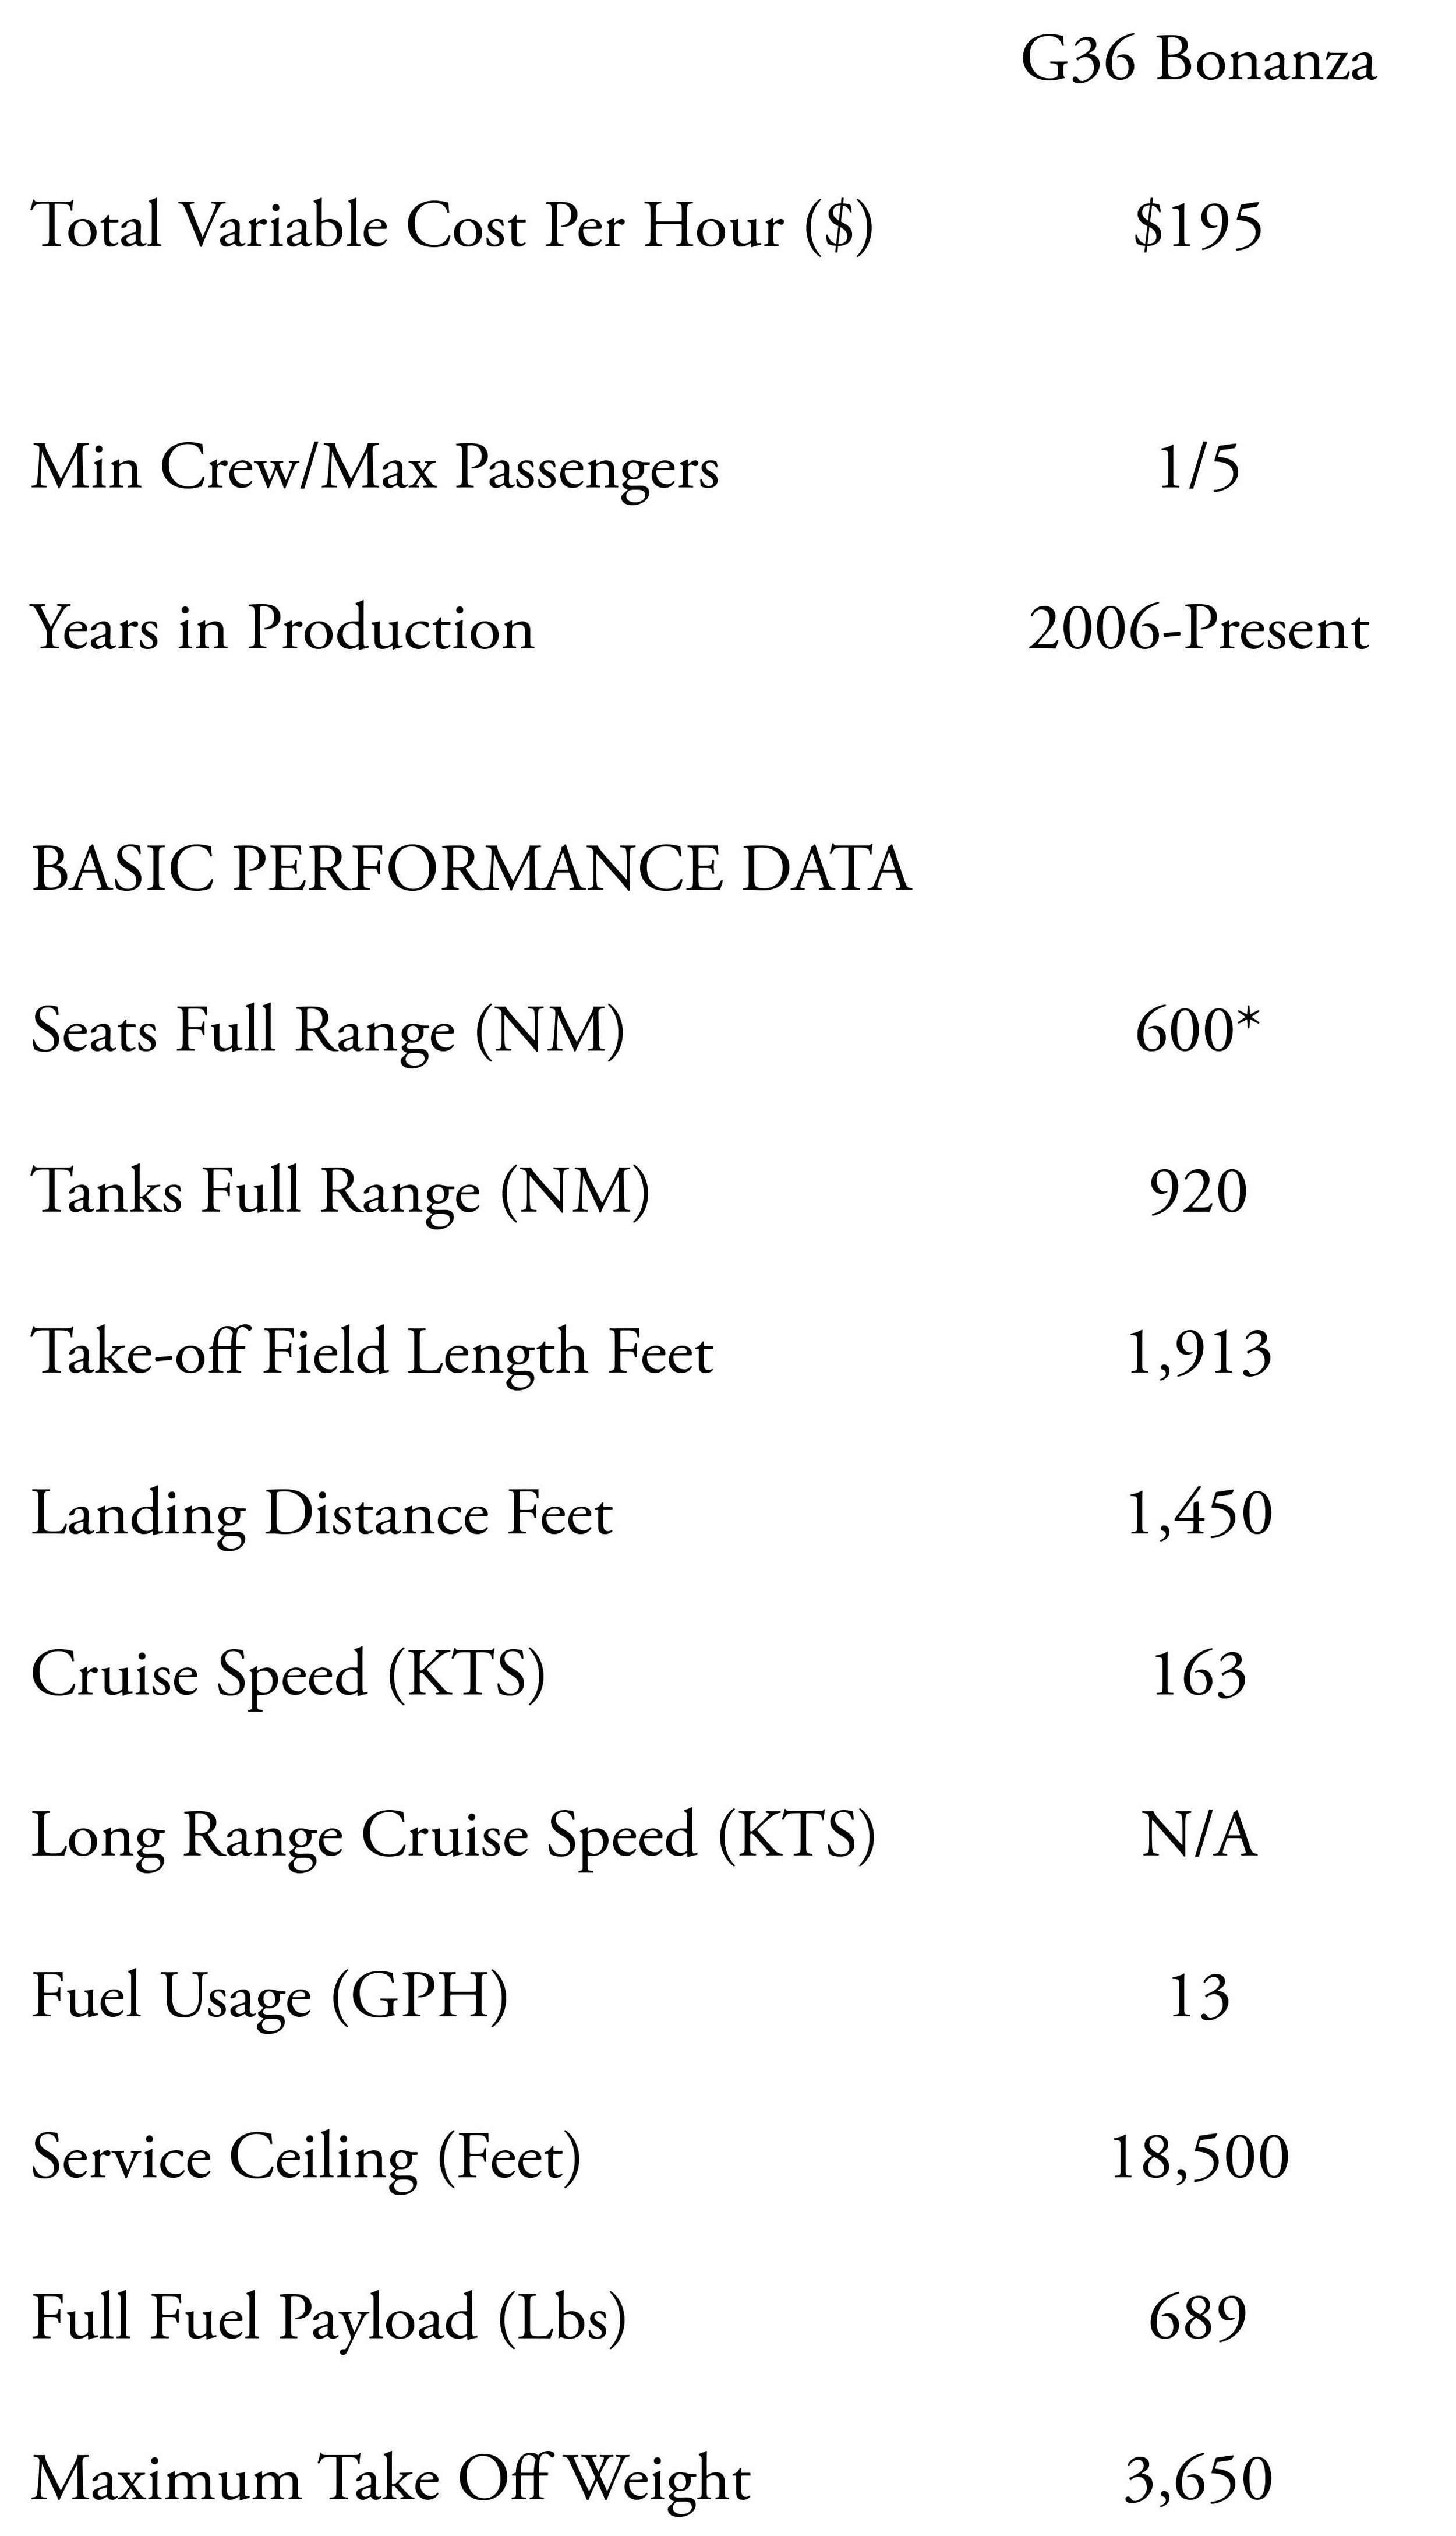 Beechcraft Bonanza G36, the newest and most advanced Bonanza on the market. This Table compares the specifications of the aircraft to its predecessor. some of these specs include: fuel usage, variable cost, range, operating cost, cruise speeds and useful loads.